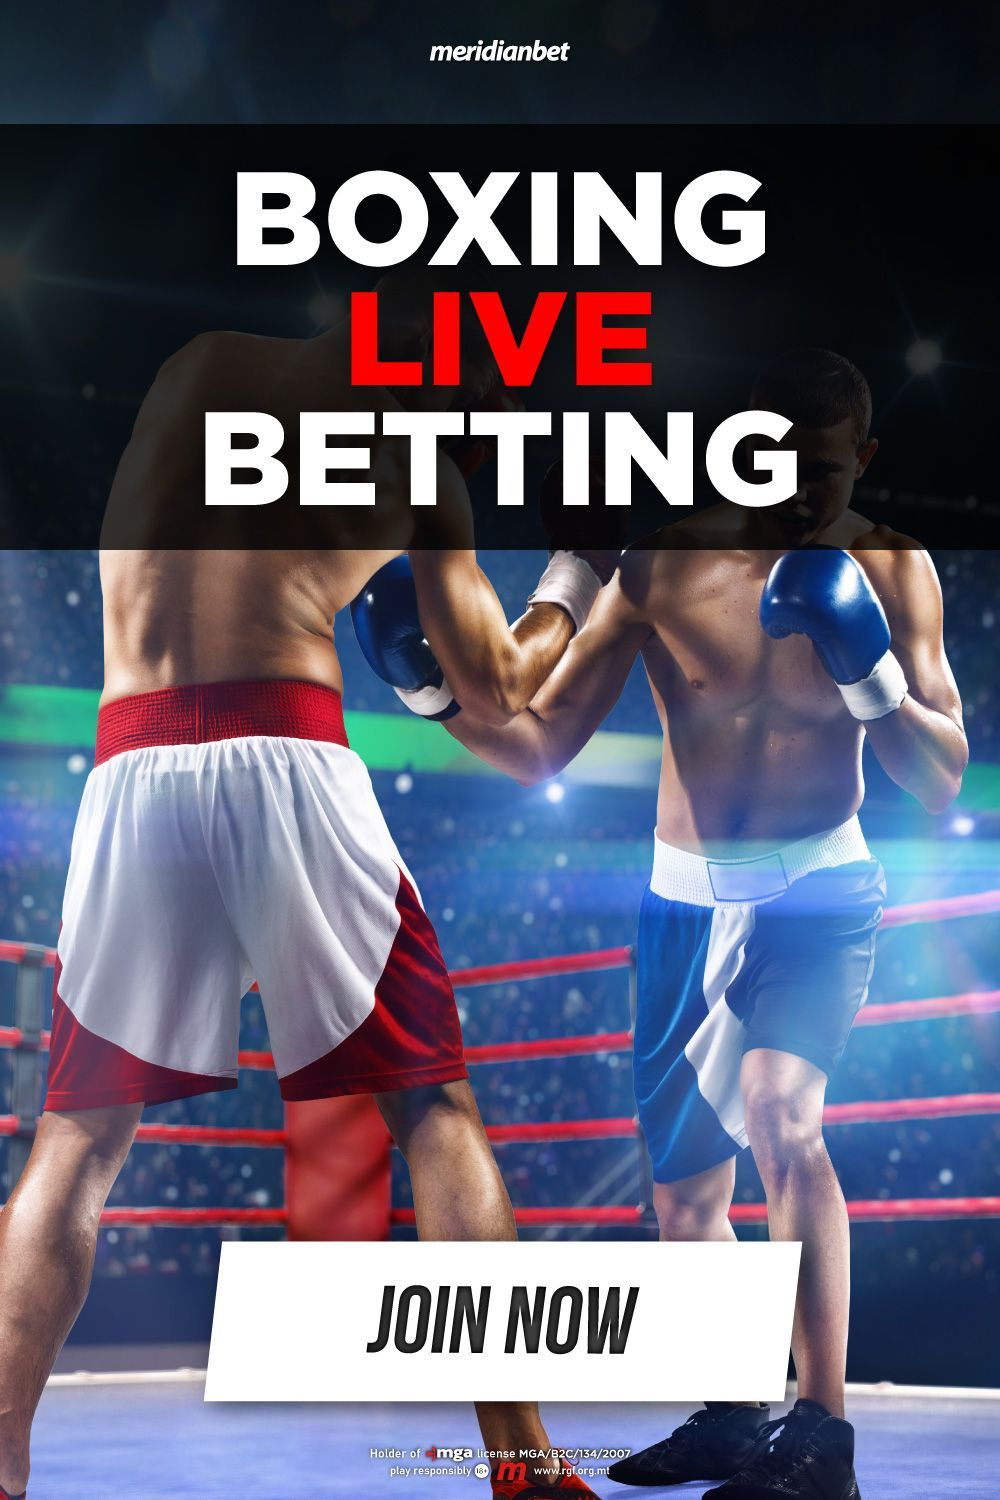 Online sports betting sites boxing advanced candlesticks and ichimoku strategies for forex trading